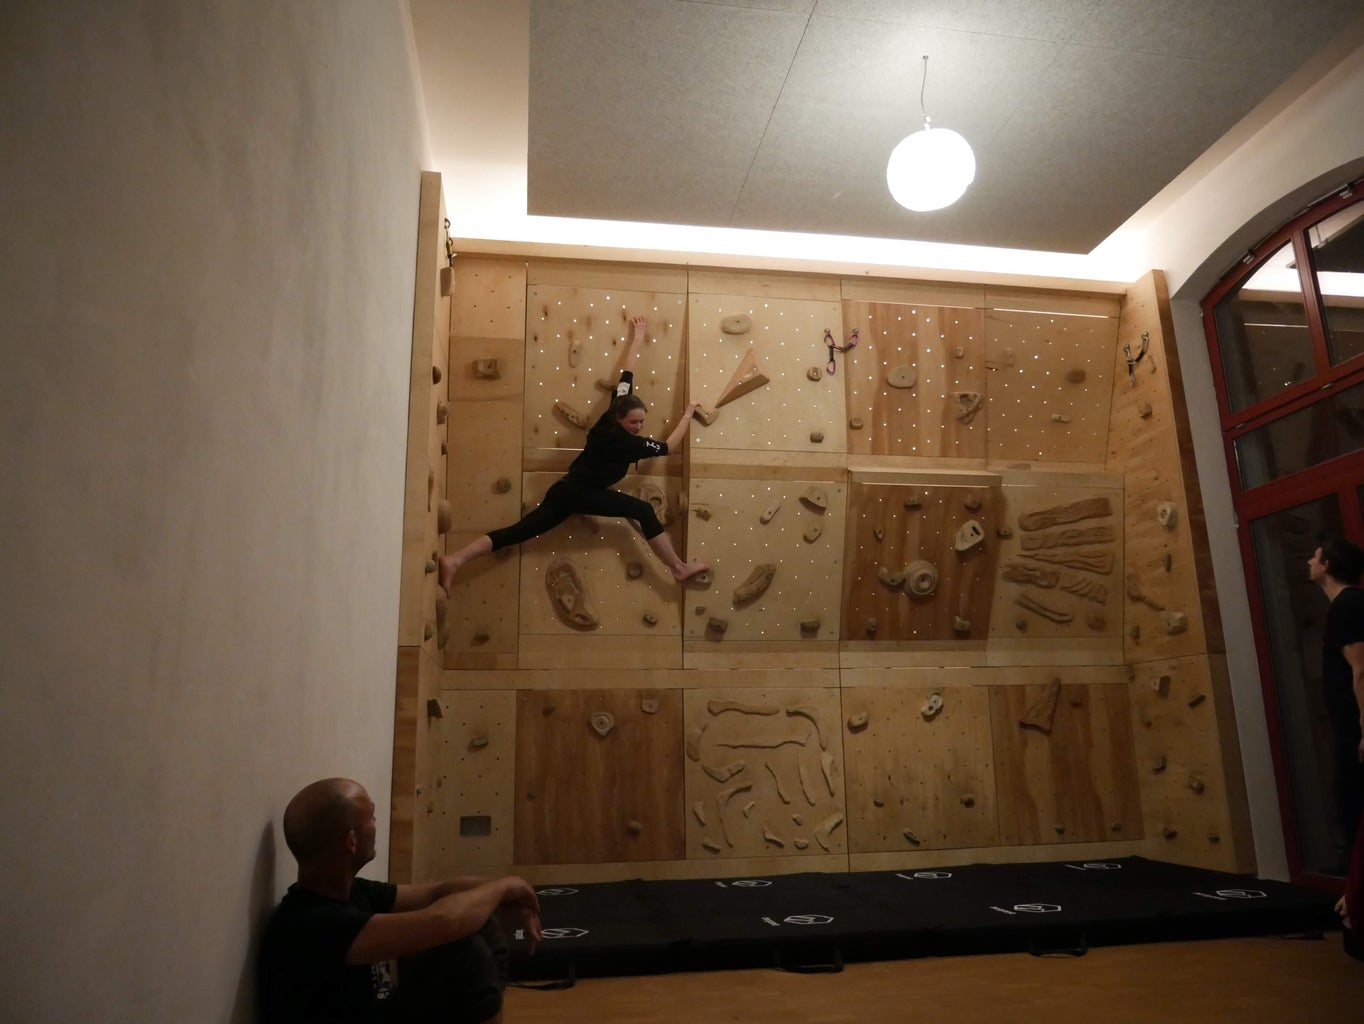 Attaching the Elements to the Wall